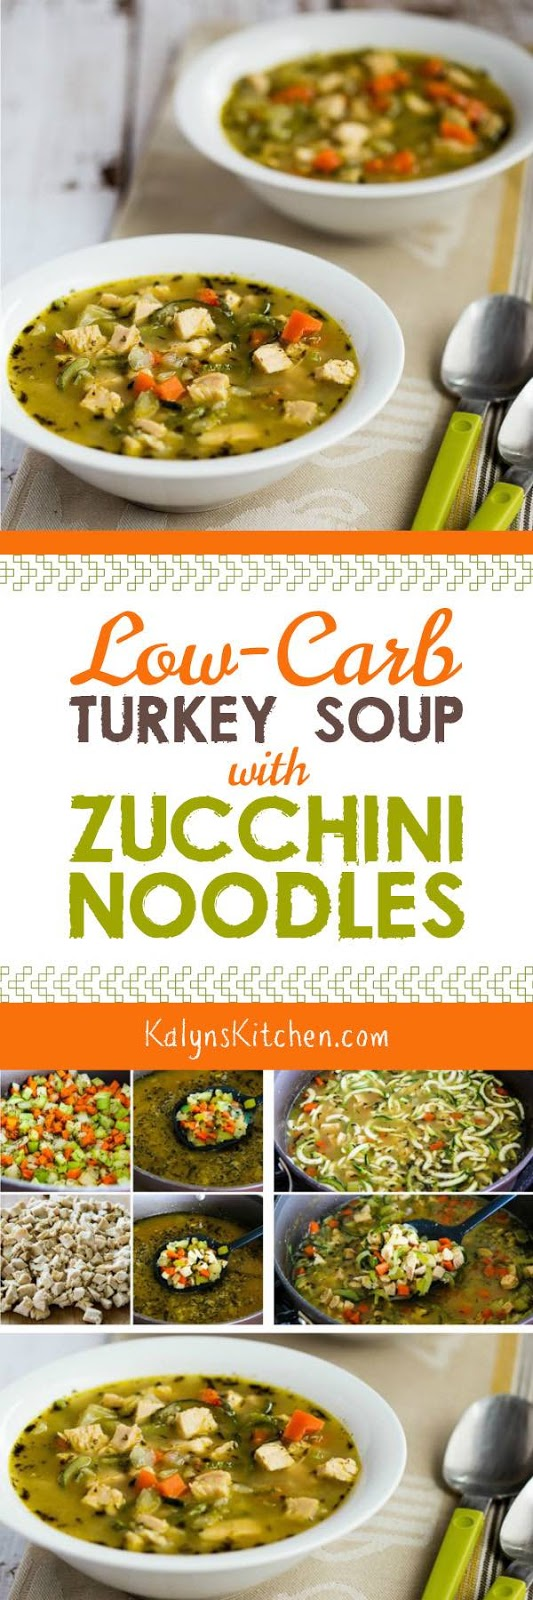 Low-Carb Turkey Soup with Zucchini Noodles - Kalyn\'s Kitchen